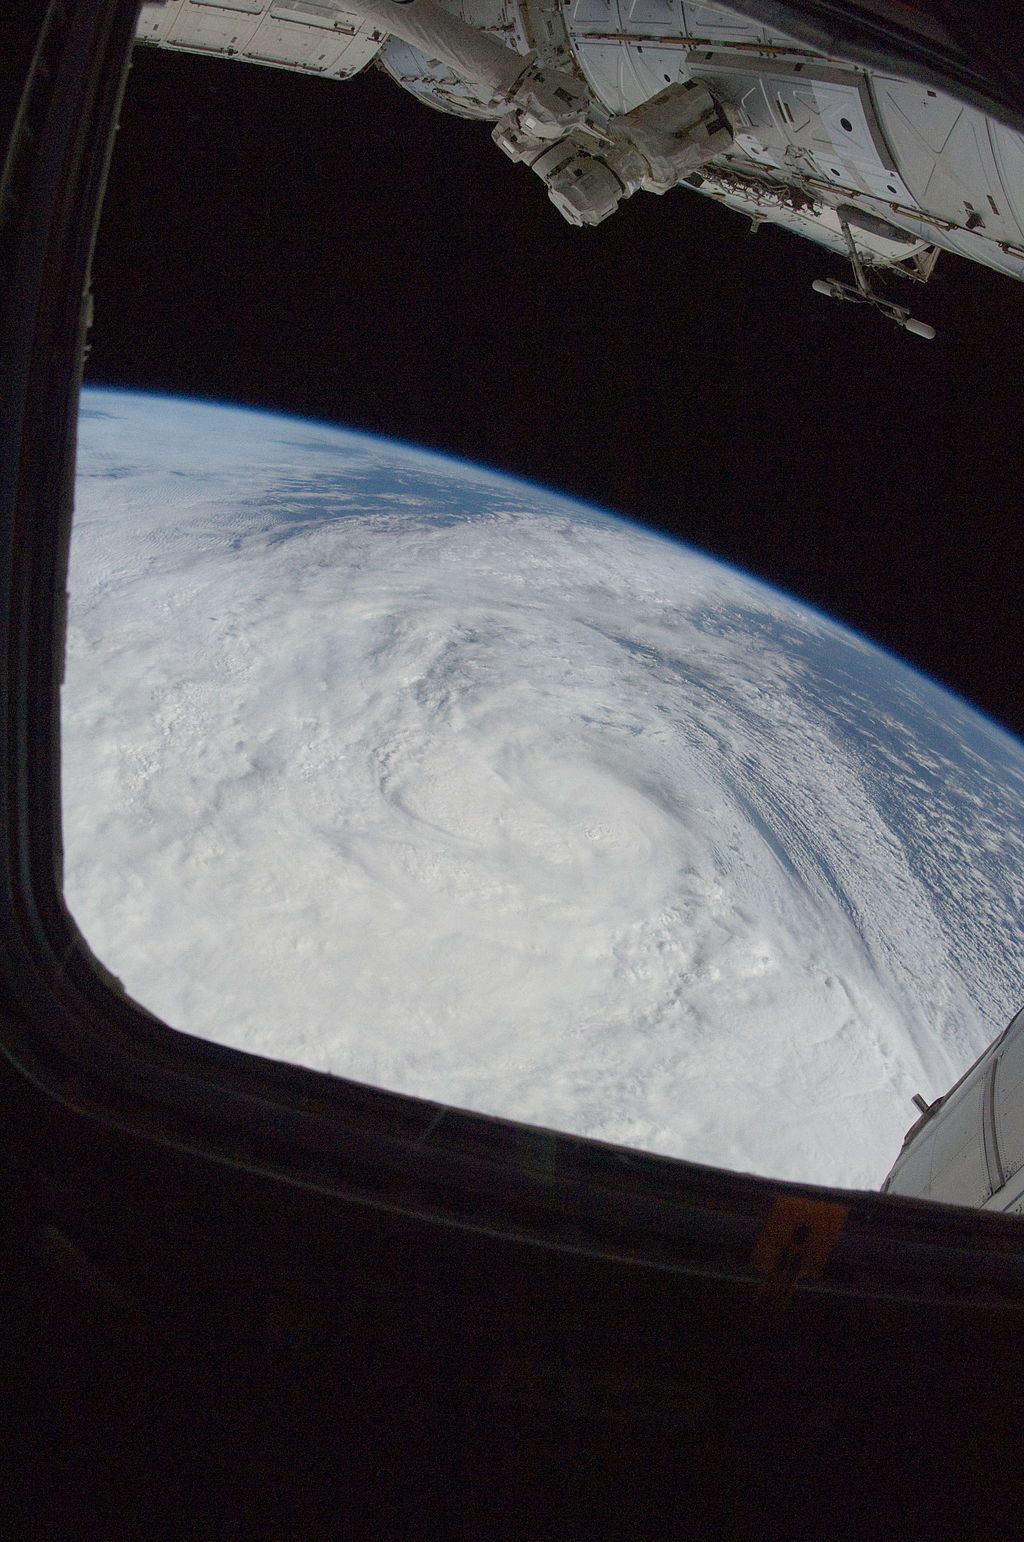 hurricane sandy from space station - photo #4